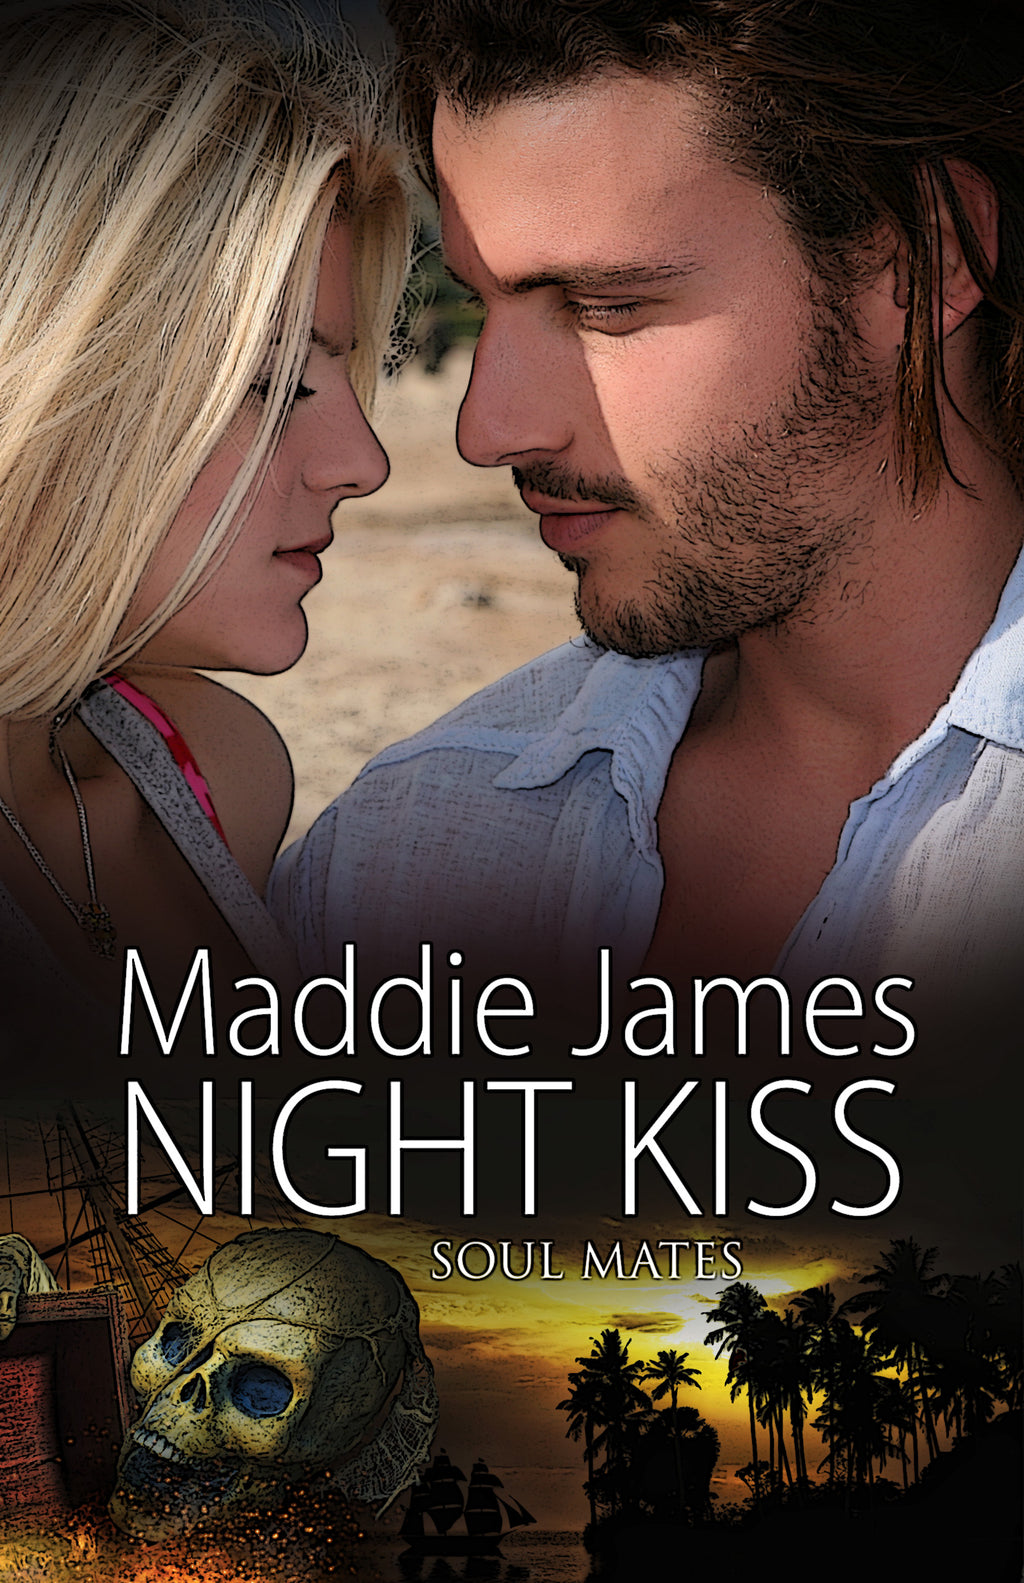 Night Kiss (Soul Mates) Book 1 - 5.99